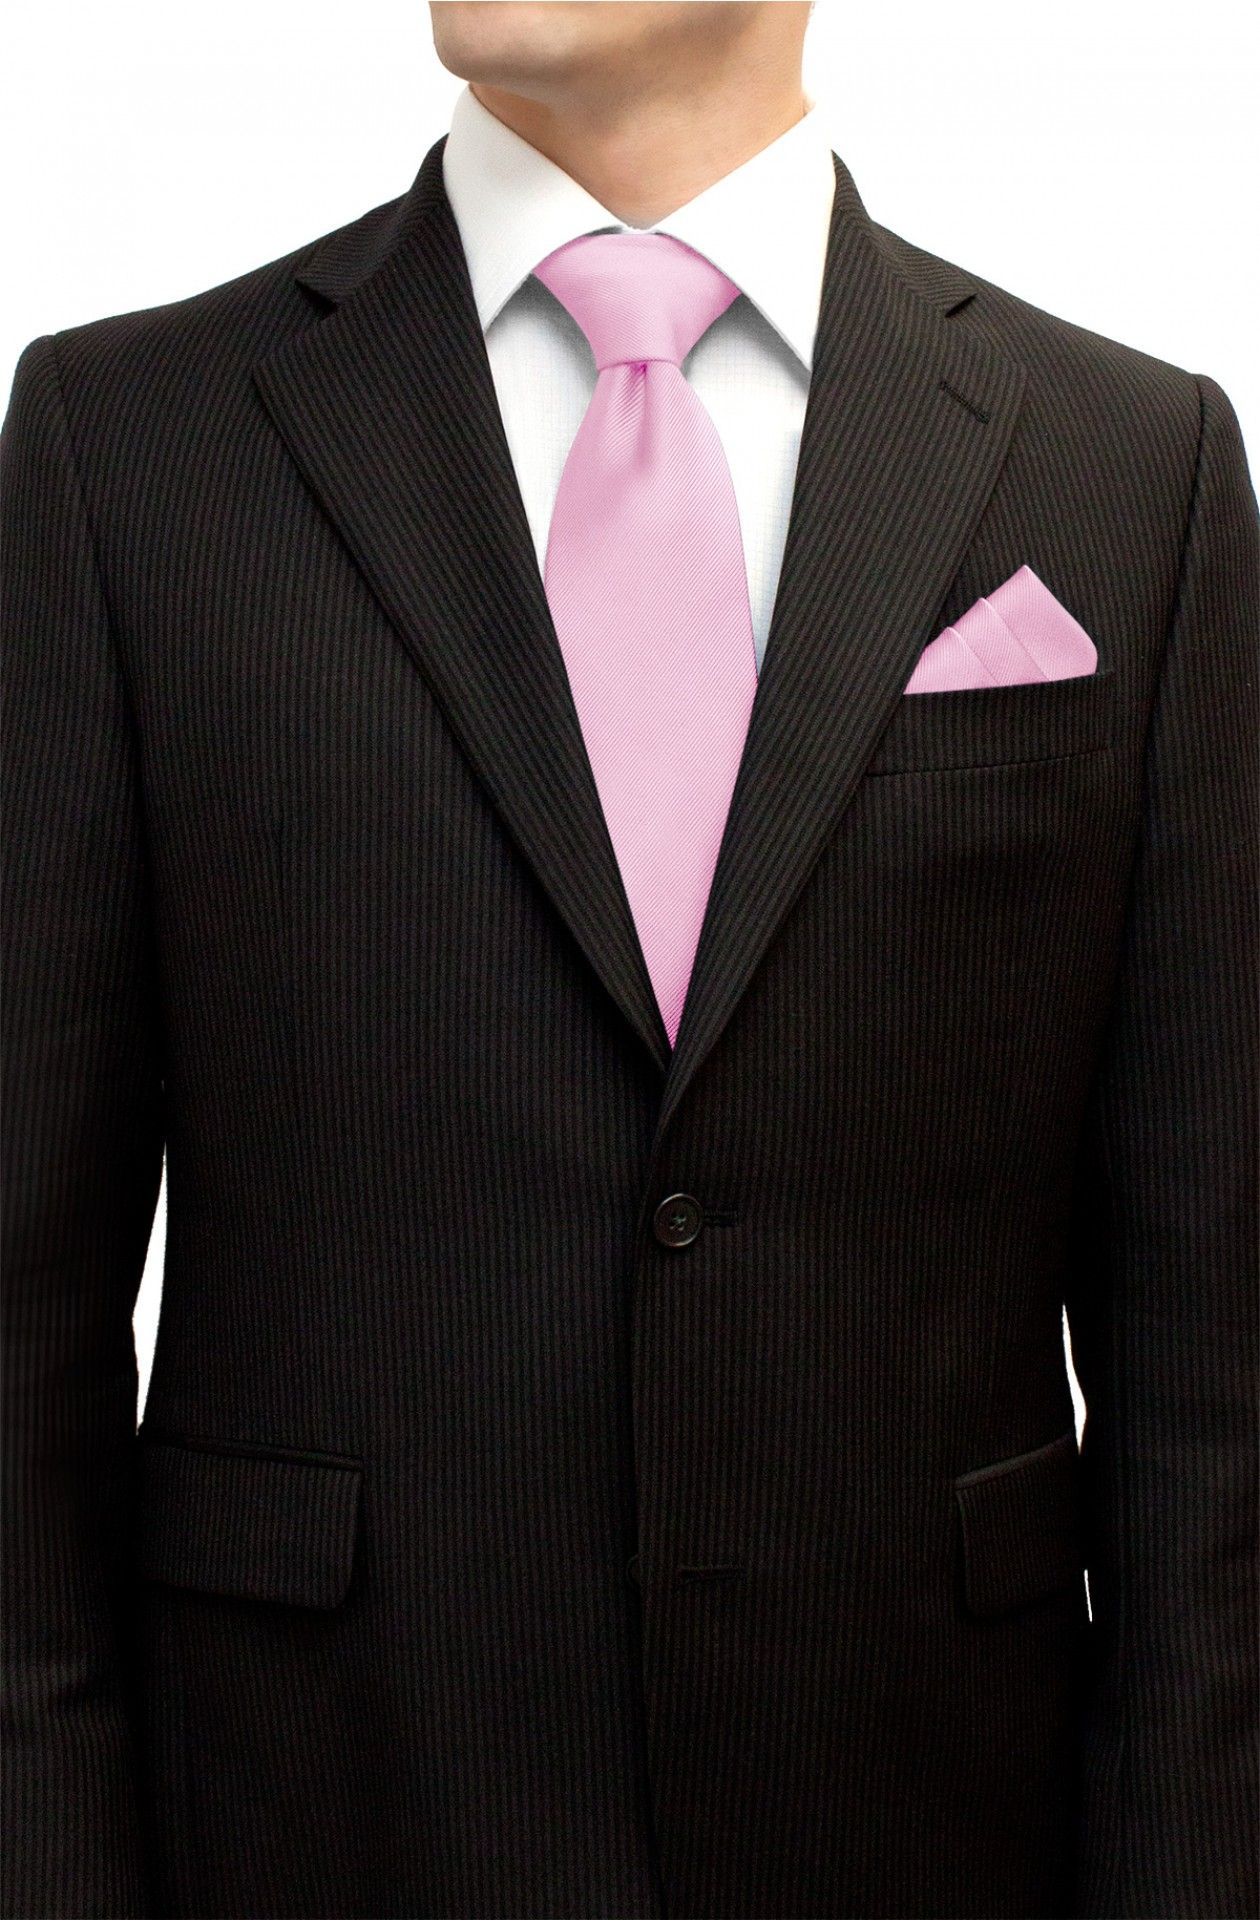 Baby Pink Tie And Pocket Square Set Tie Amp Pocket Square